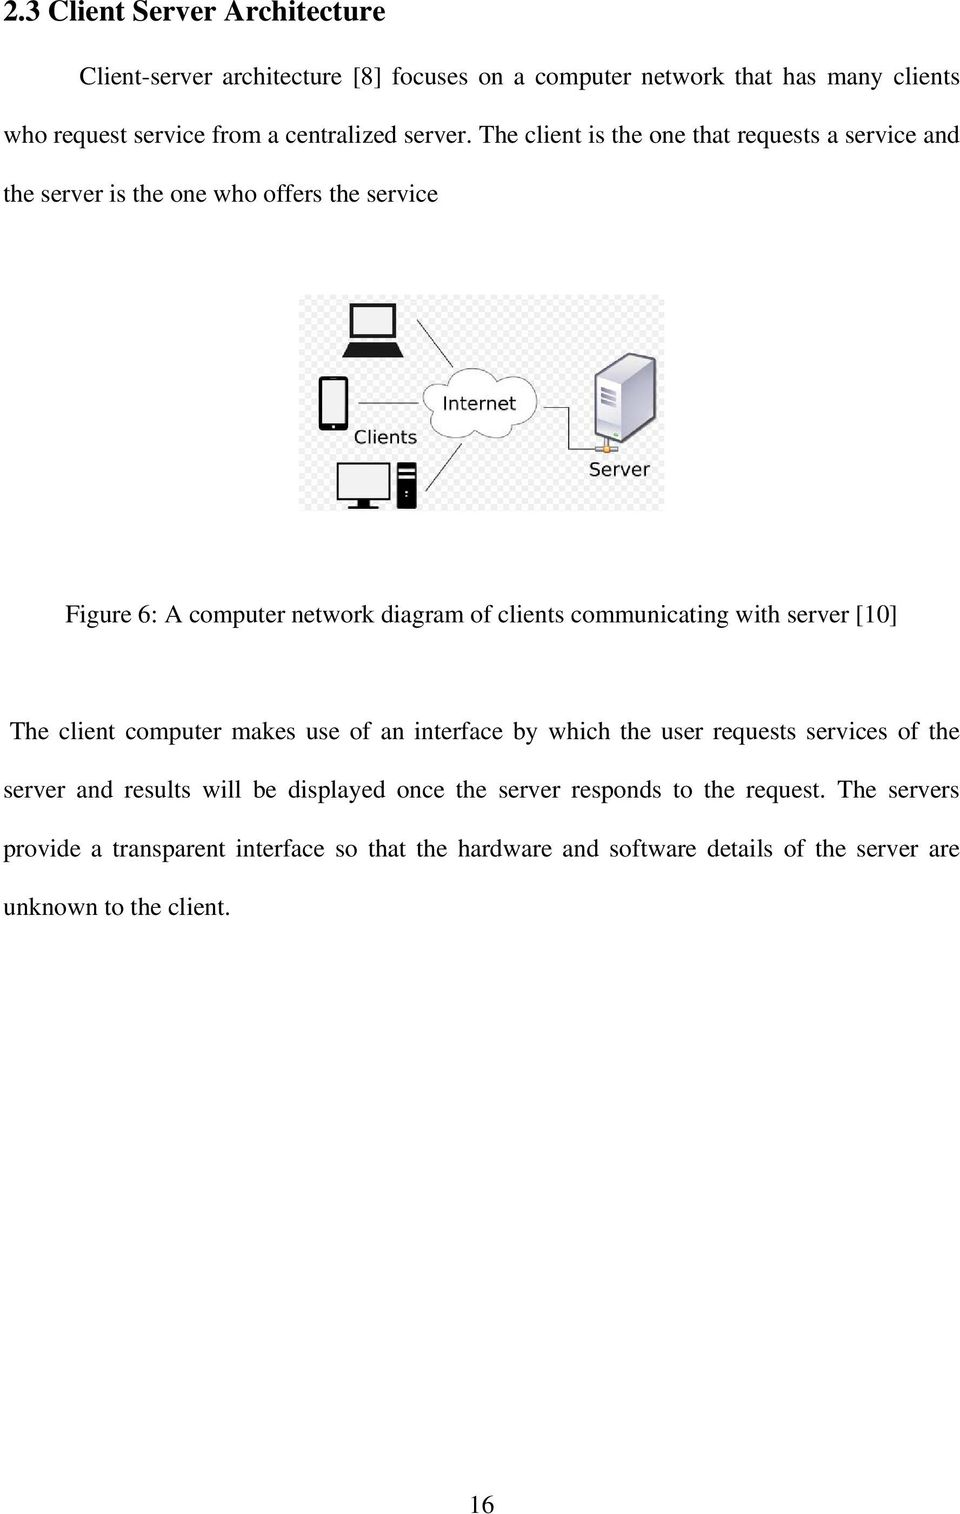 The client is the one that requests a service and the server is the one who offers the service Figure 6: A computer network diagram of clients communicating